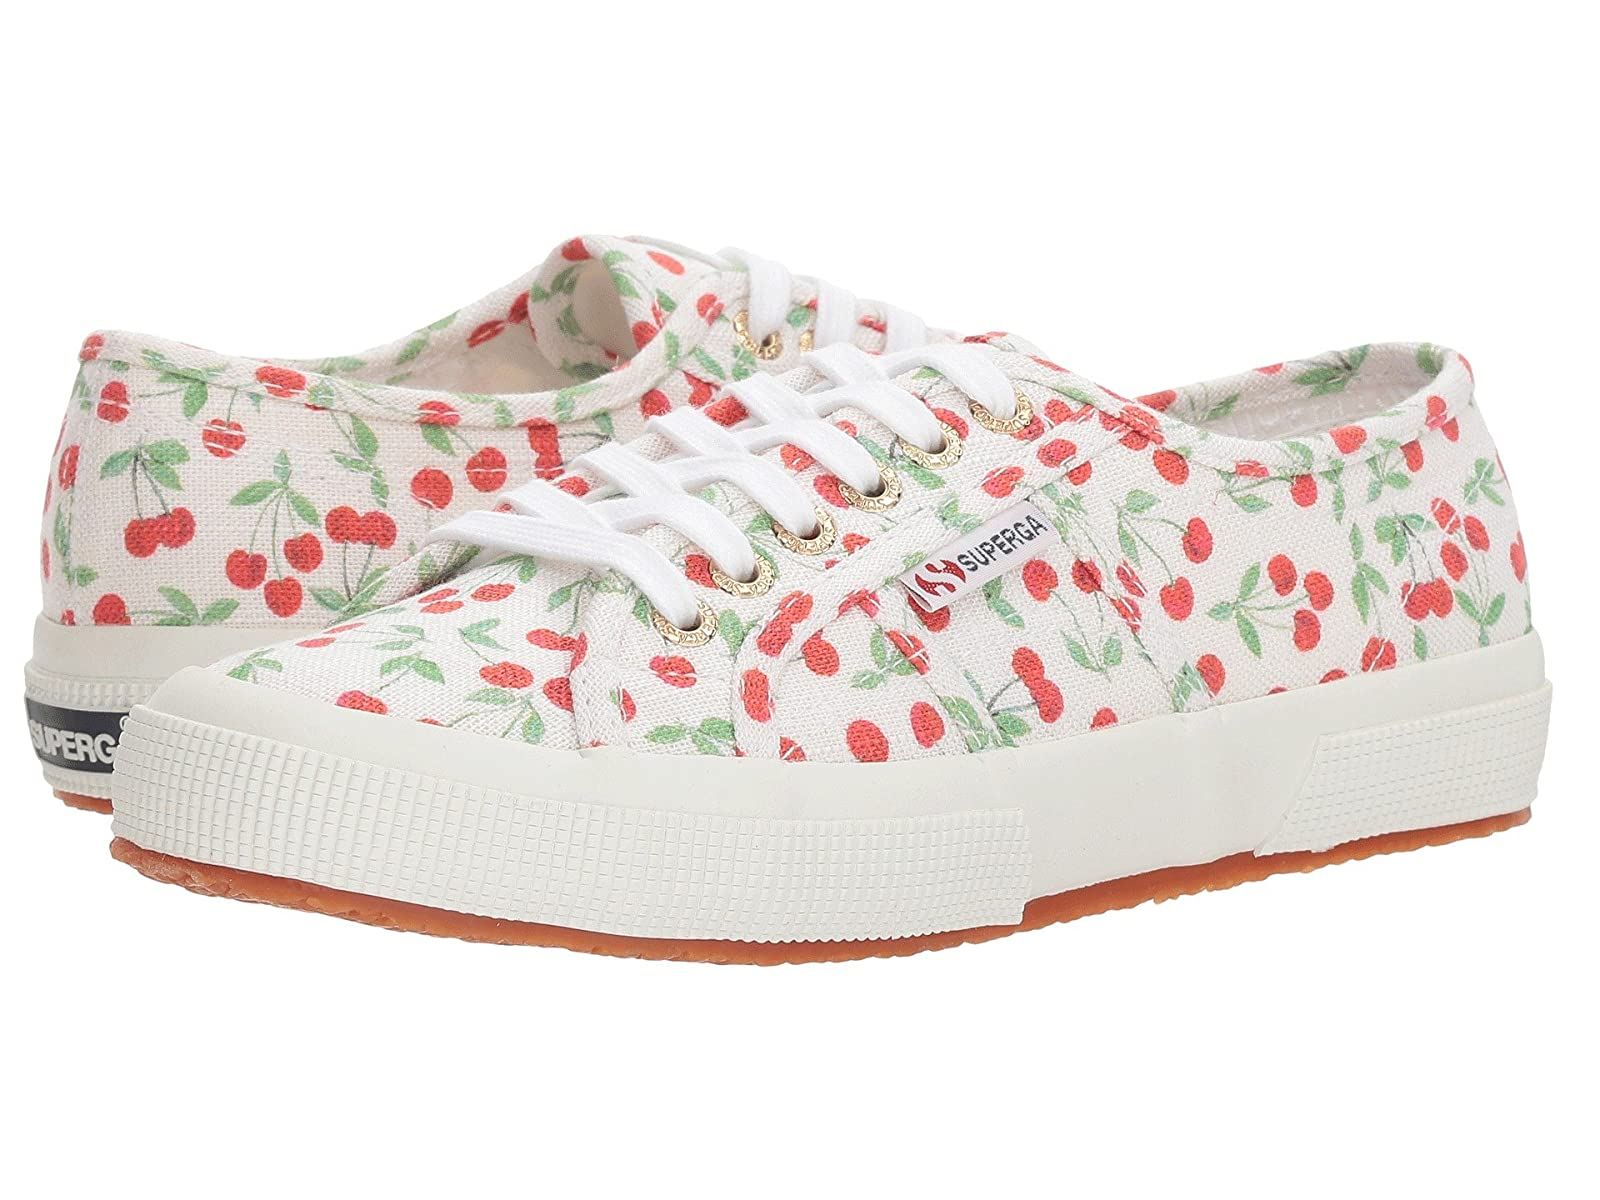 Superga 2750 Linen Fruitw SneakerAtmospheric grades have affordable shoes